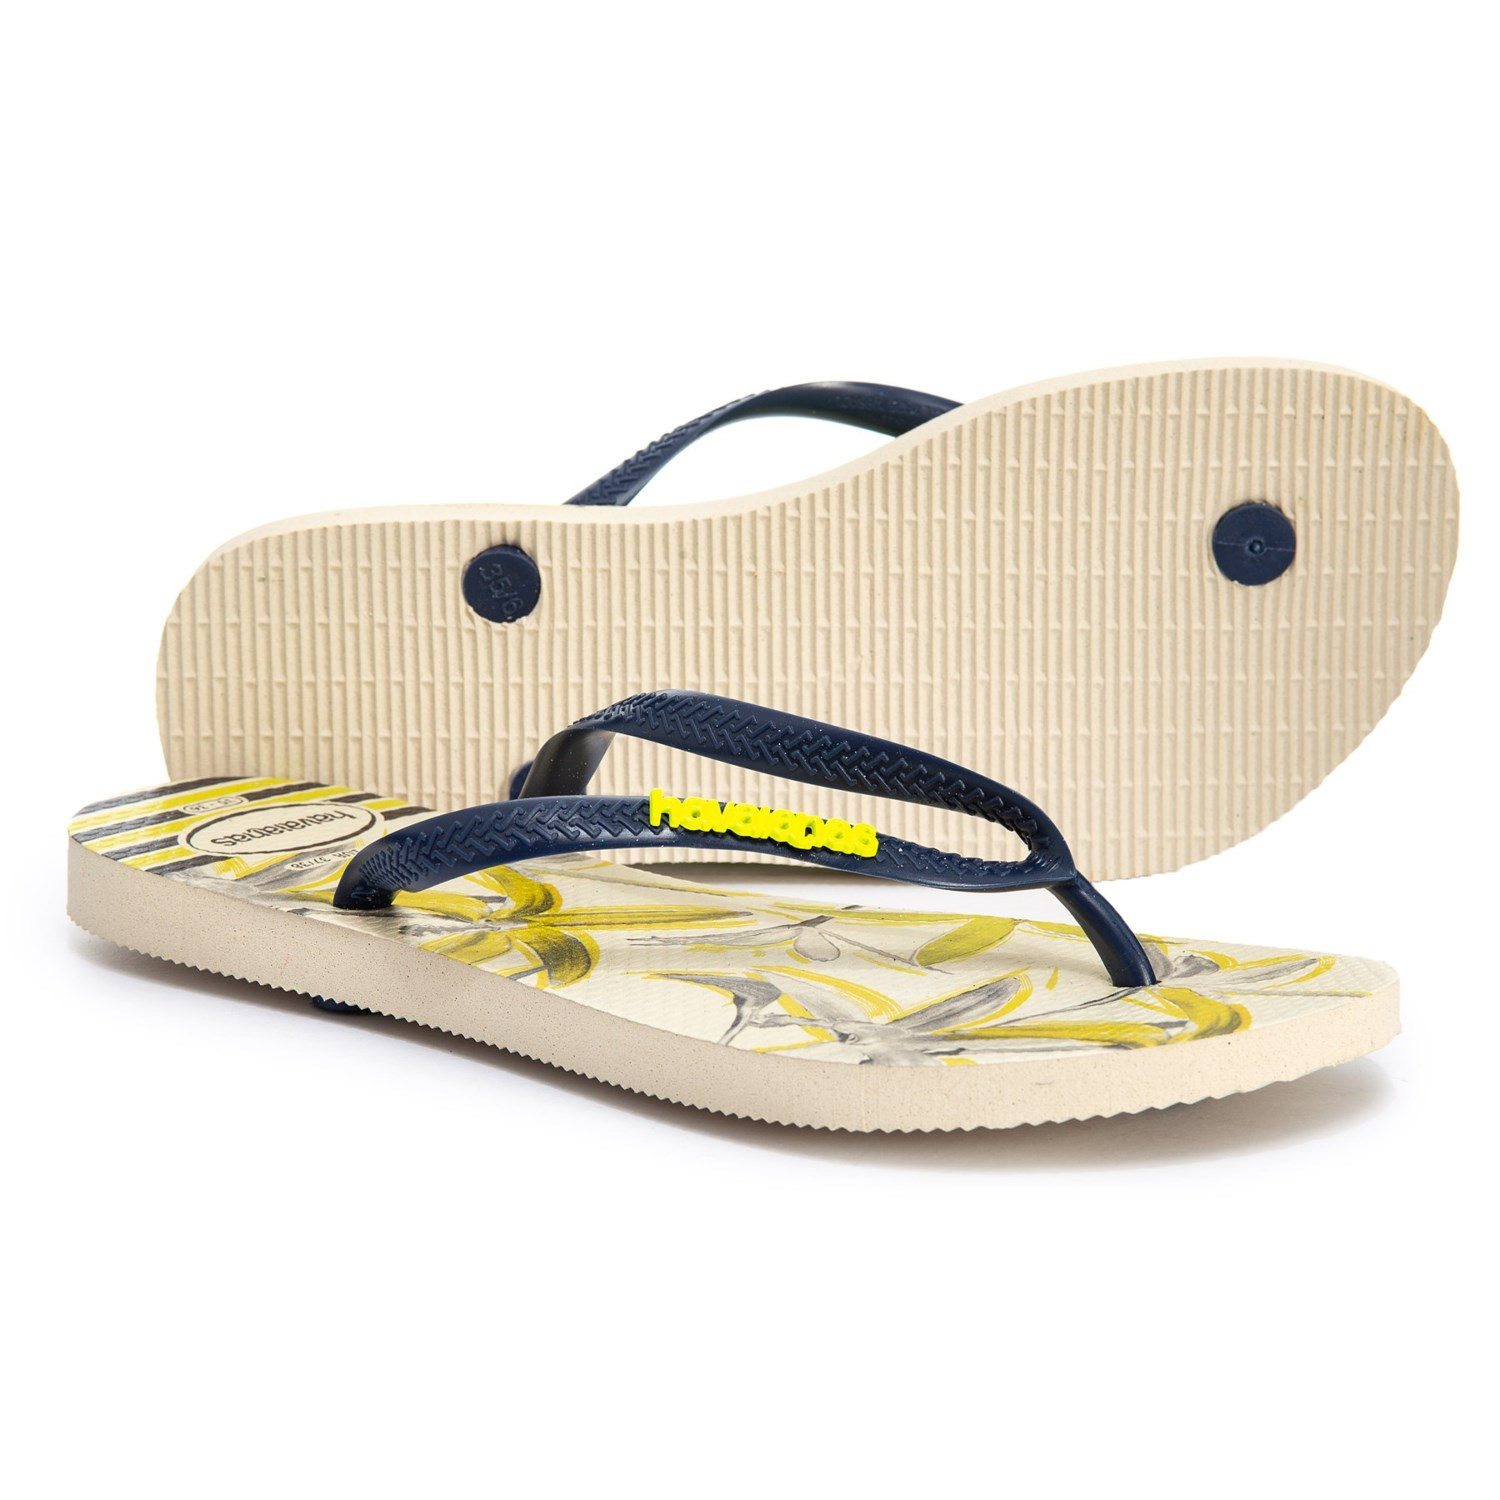 33a8e0f3275 Havaianas Slim Tropical Flip-Flops (For Women)